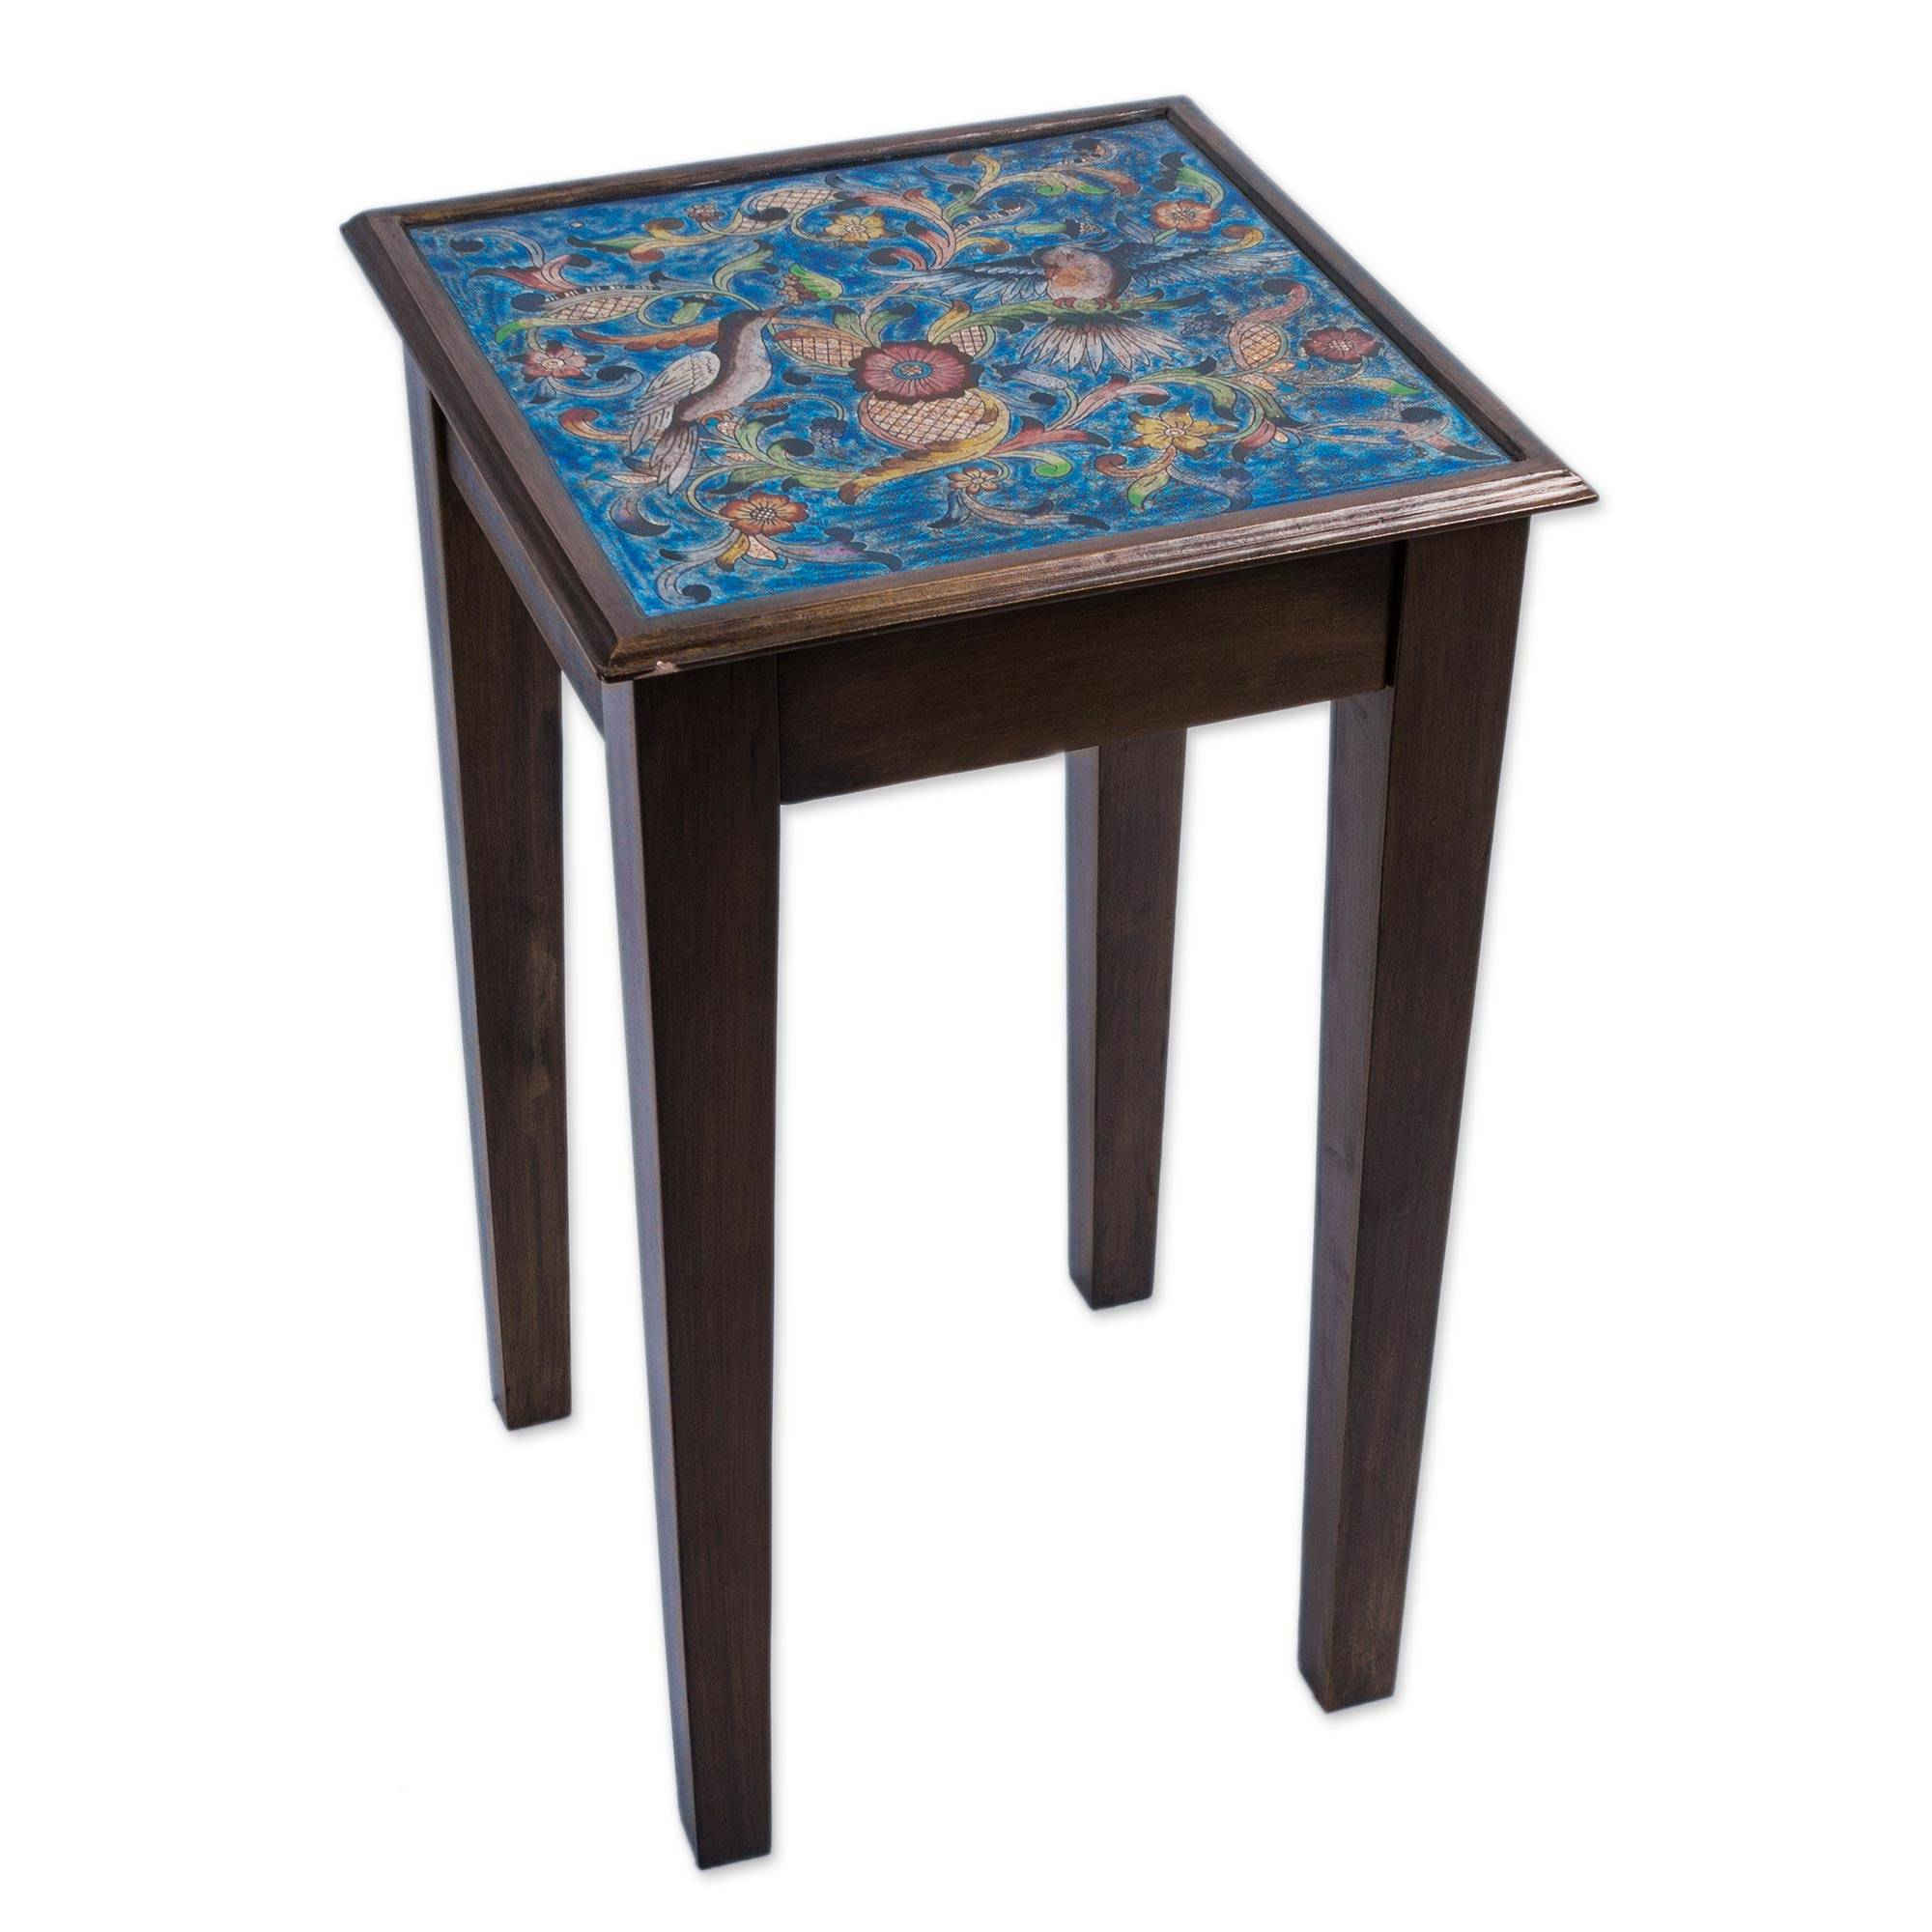 hand painted glass top wood accent table birds the heavens novica rustic coffee with shelf inexpensive console bedside lights outdoor folding end modern marble legs big round